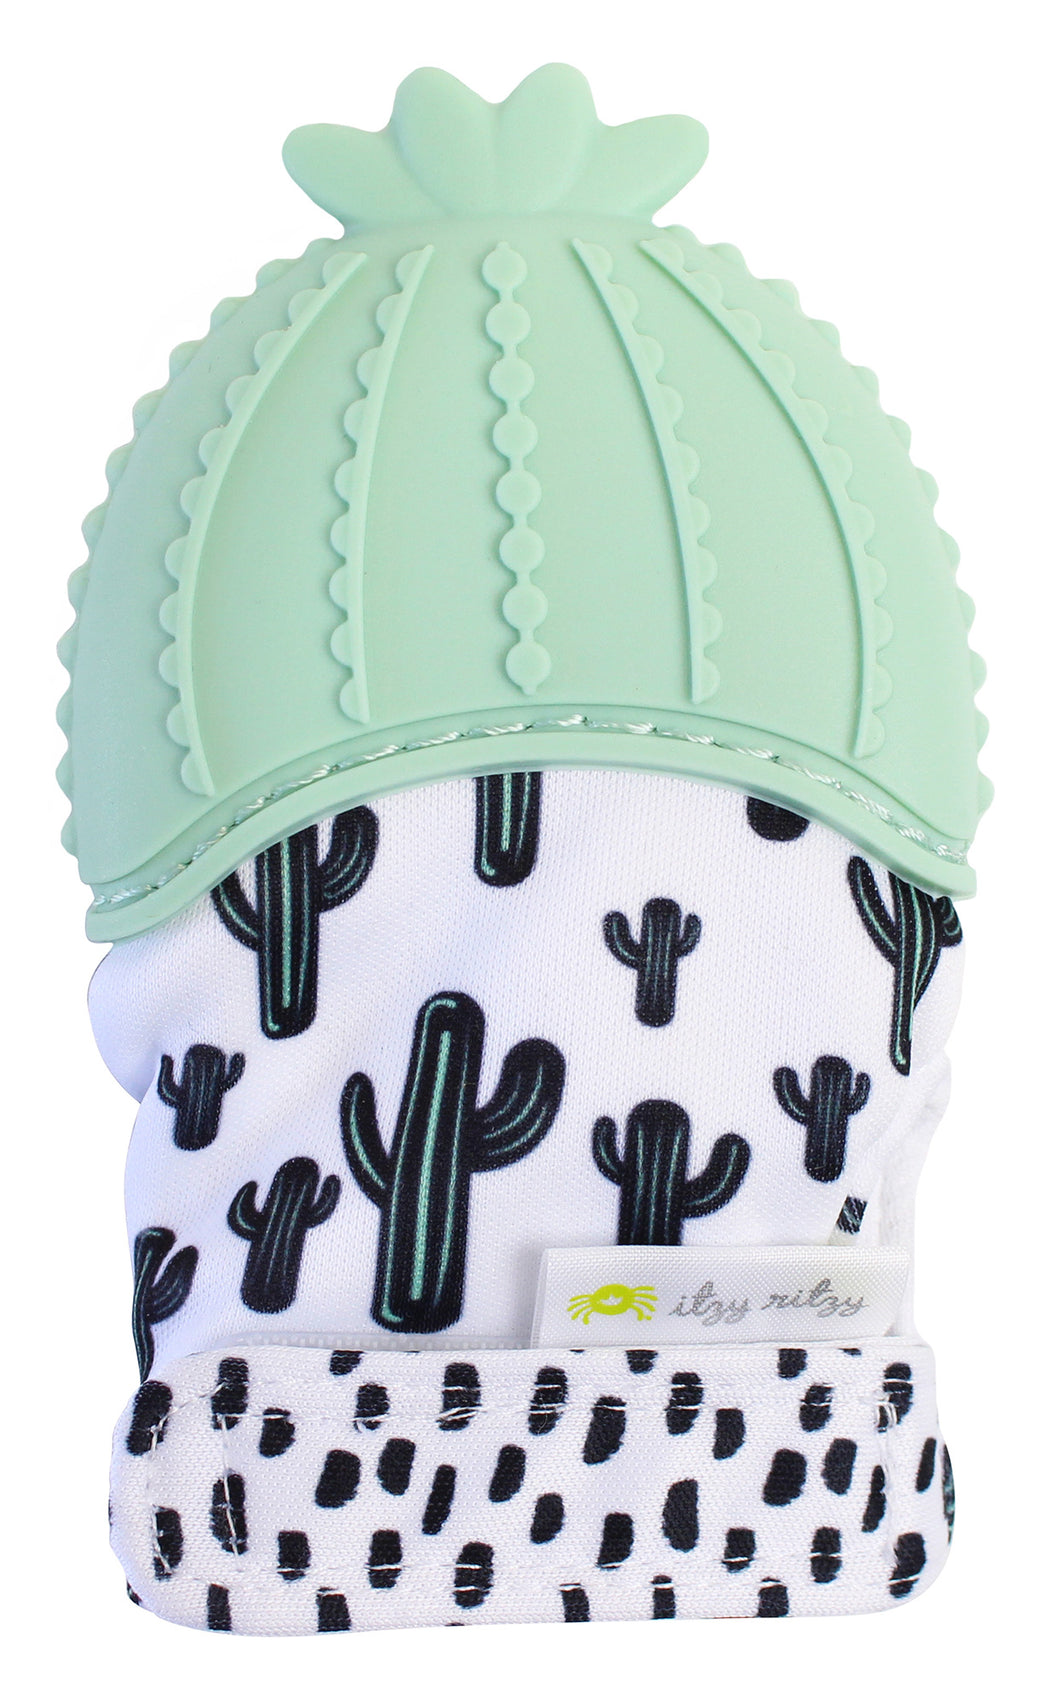 Cactus Itzy Mitt™ Silicone Teething Mitts